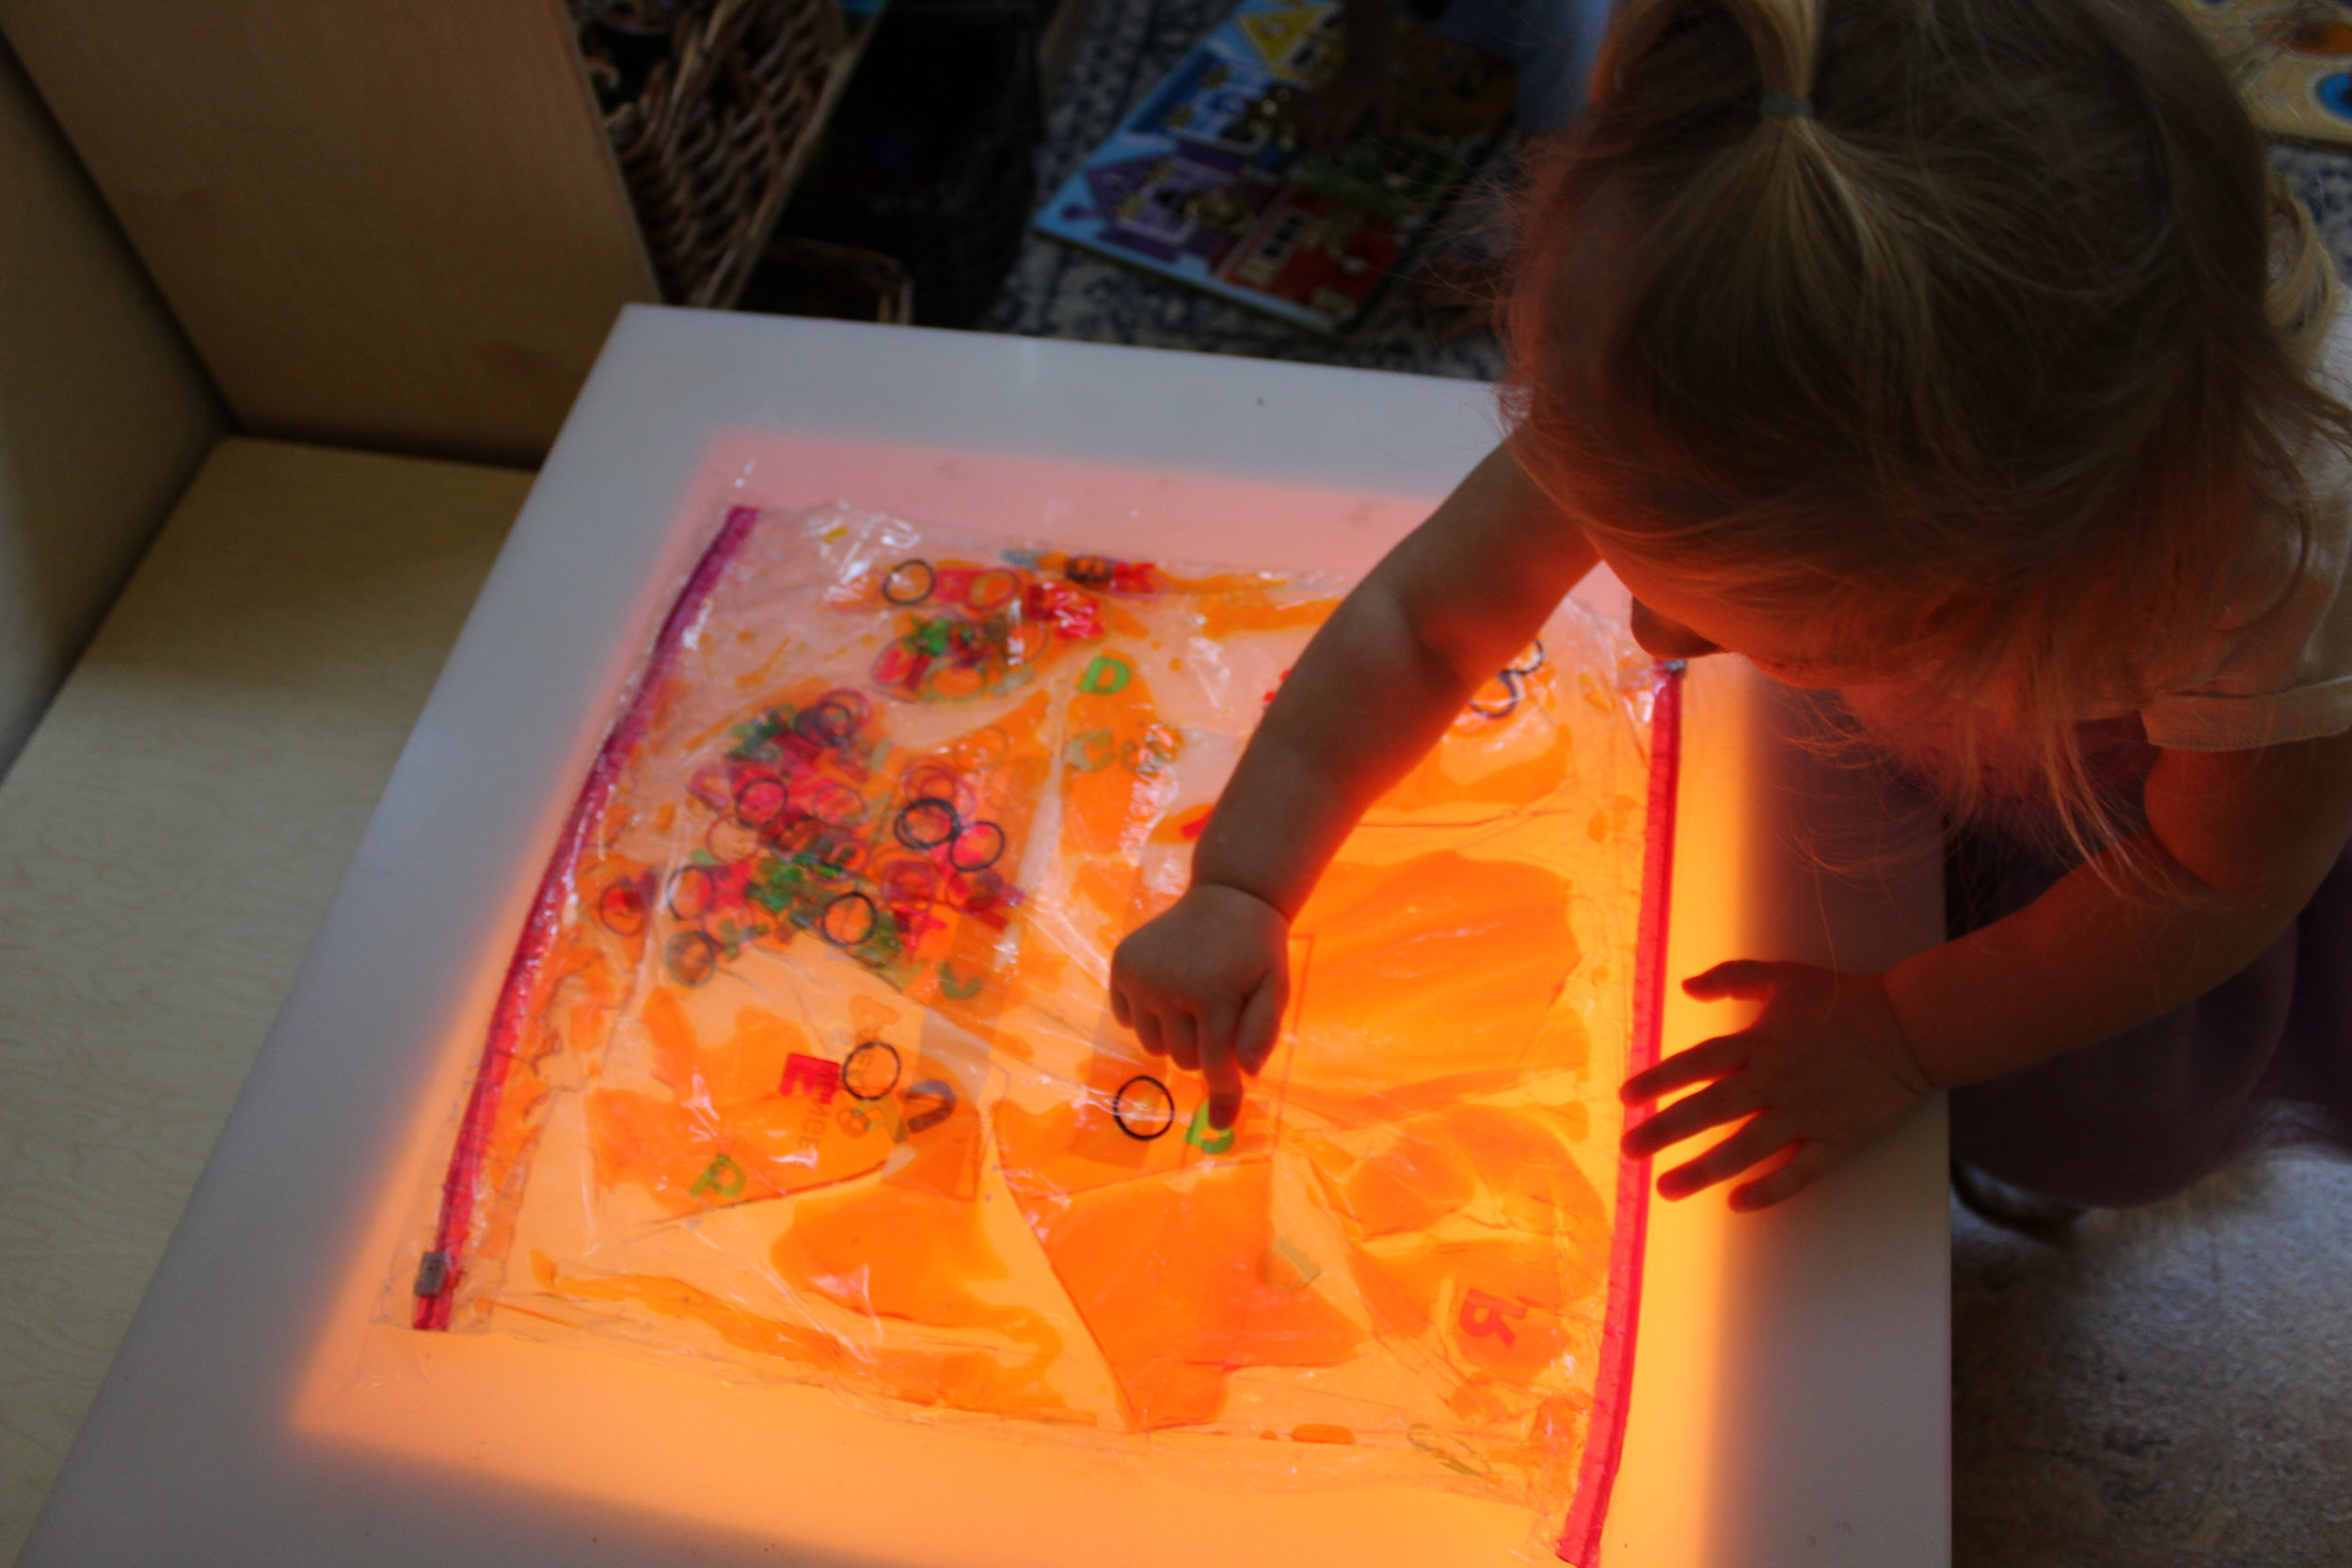 Sensory bags are inviting to toddlers. Sensory invitations to play is a delightful resource that encourages children to explore their sense of touch and sight.Madeline appears intrigued as she explores the sensory bag on the lightable. The bag contained water, baby oil, orange watercolor, colorful rubber bands and letters. She noticed how the watercolor moved as she touched and patted the Ziploc bag. Madeline used her fingertips to press each letter, and as she pushed, they moved. The movement encouraged her to touch other letters.